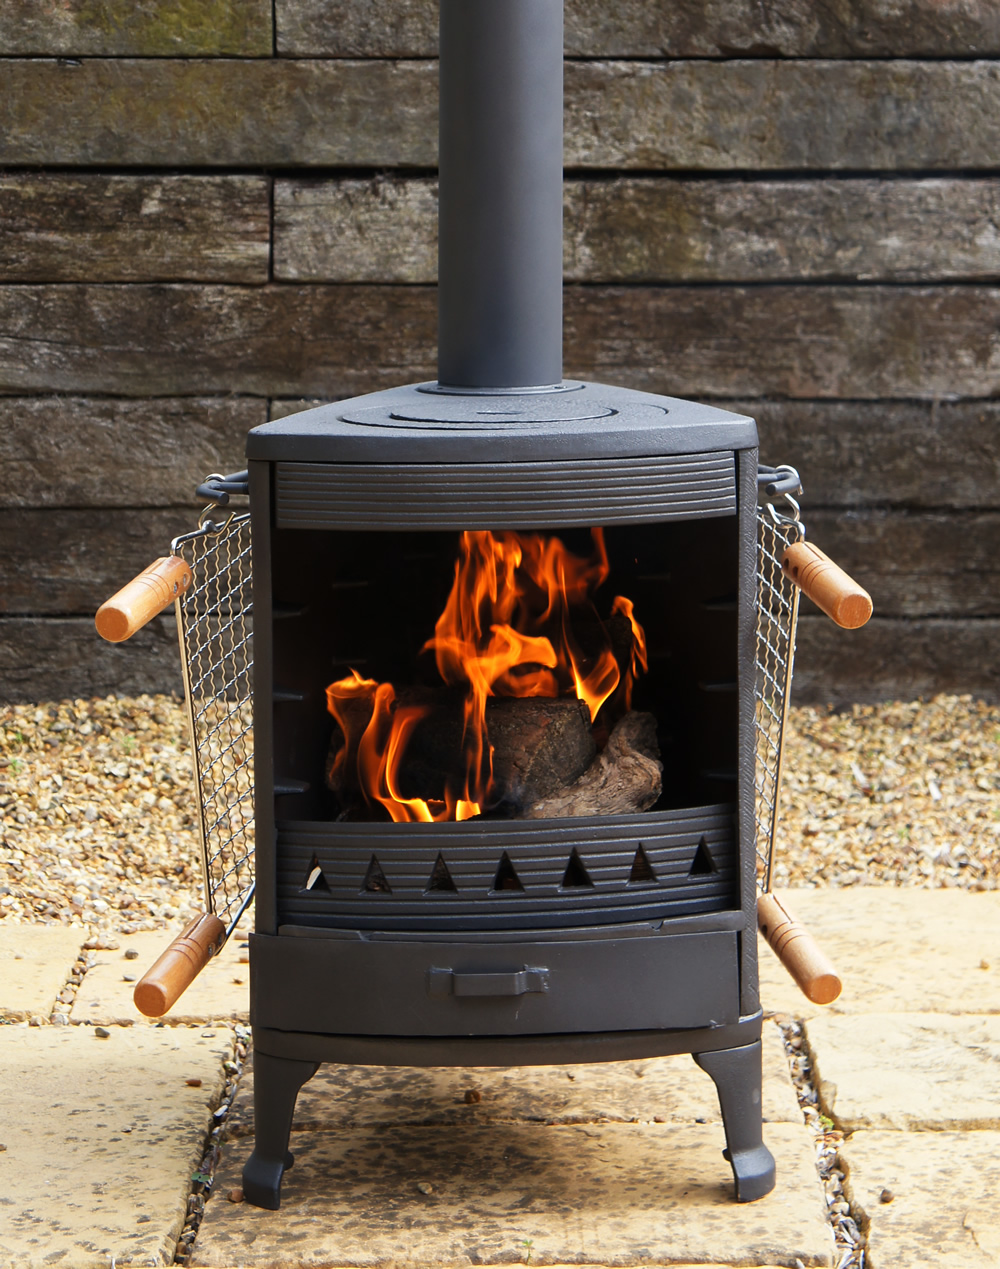 Hellfire garden cast iron stove cooker bbq patio heater for Wood burning stove for porch